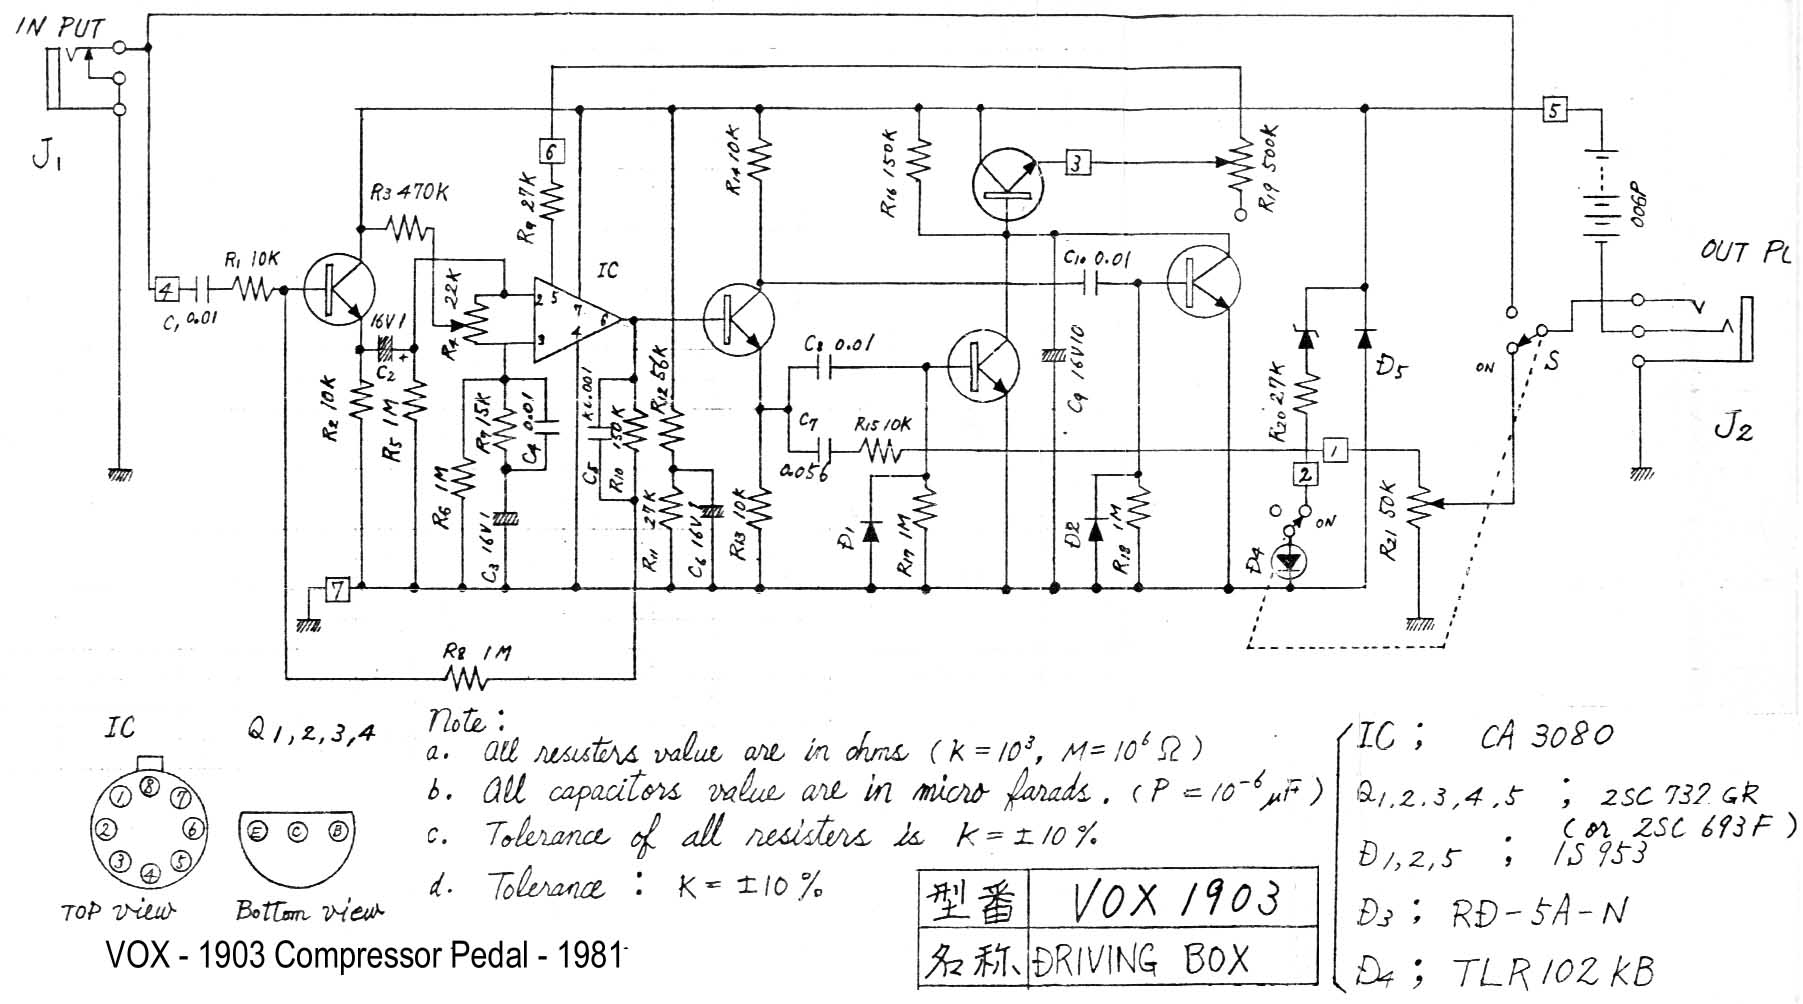 Ross Valve Wiring Diagram Schematics Diagrams Avs Box Vox Vintage Circuit Rh Korguk Com Air Ride Switch Fire Suppression System